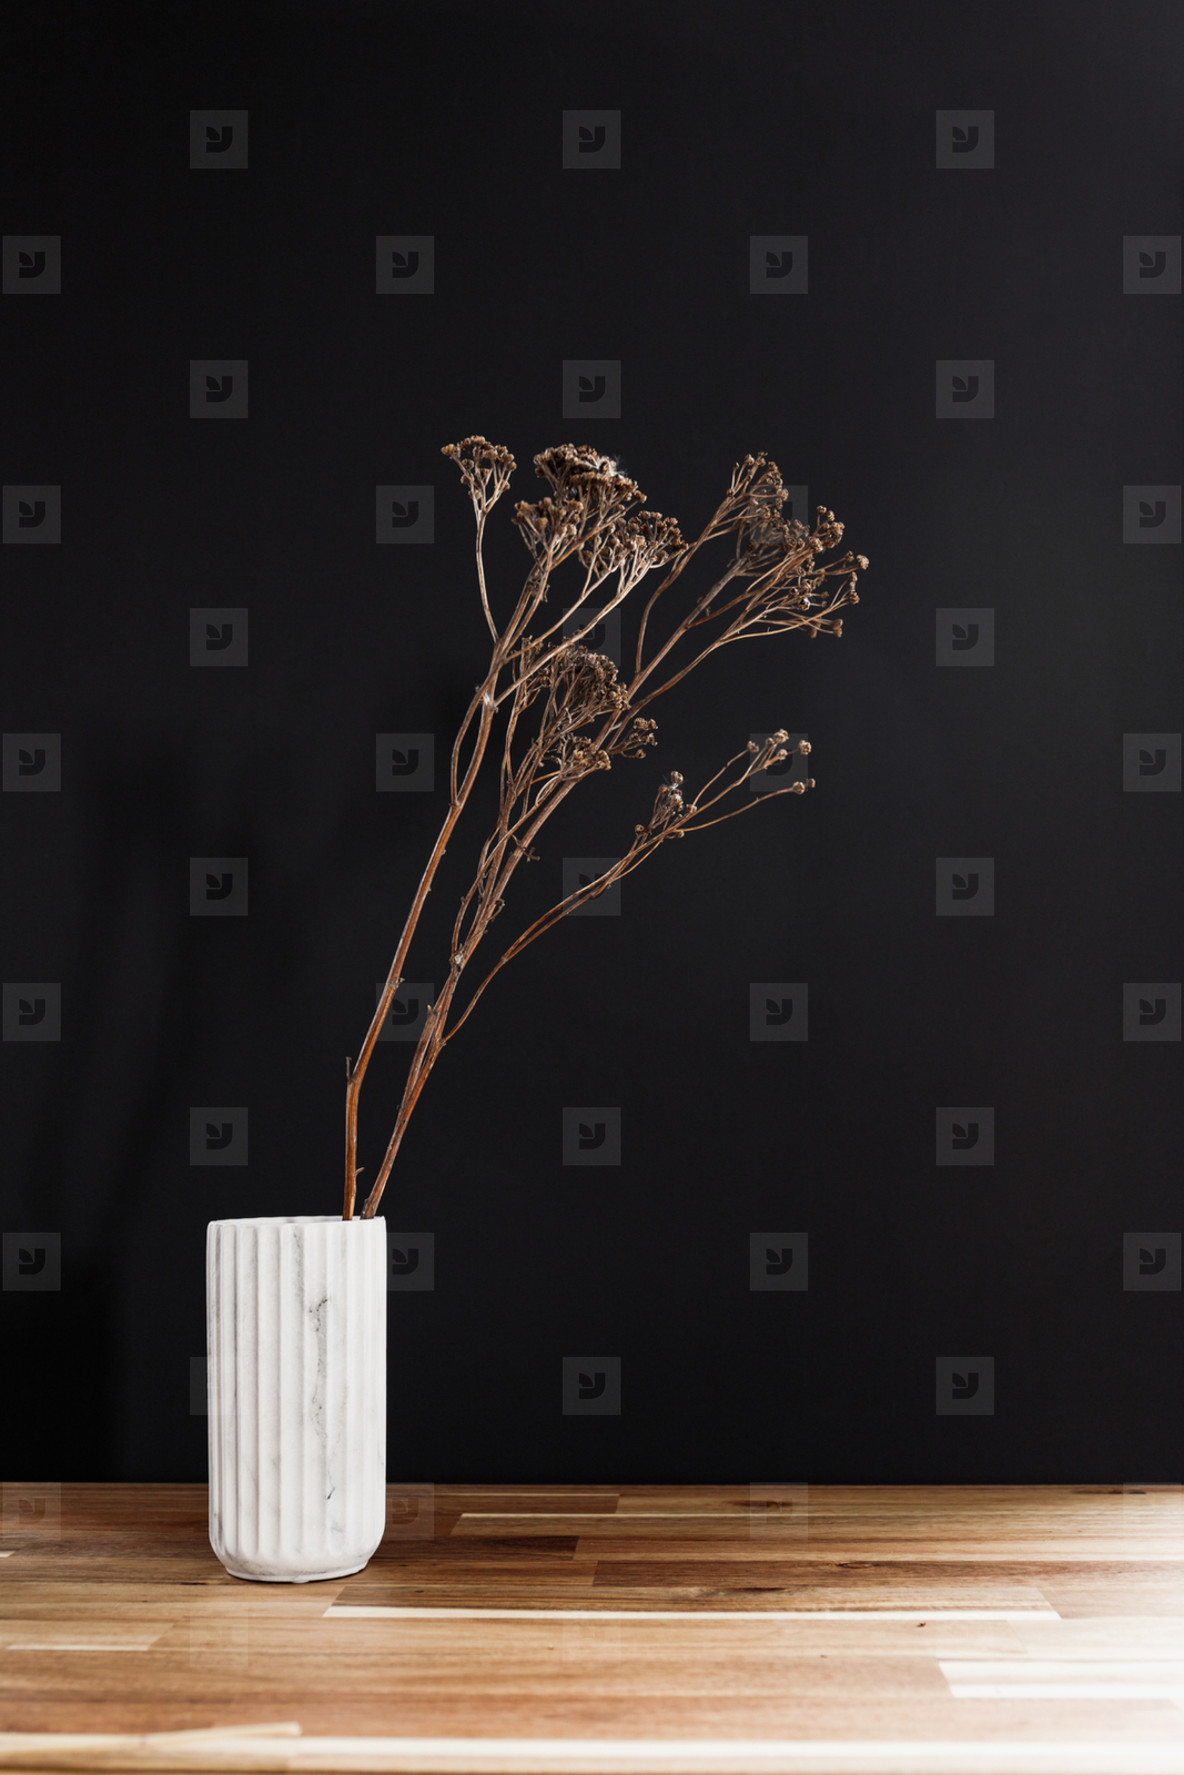 Dry decor plant in a white marble vase on a wooden table against black wall